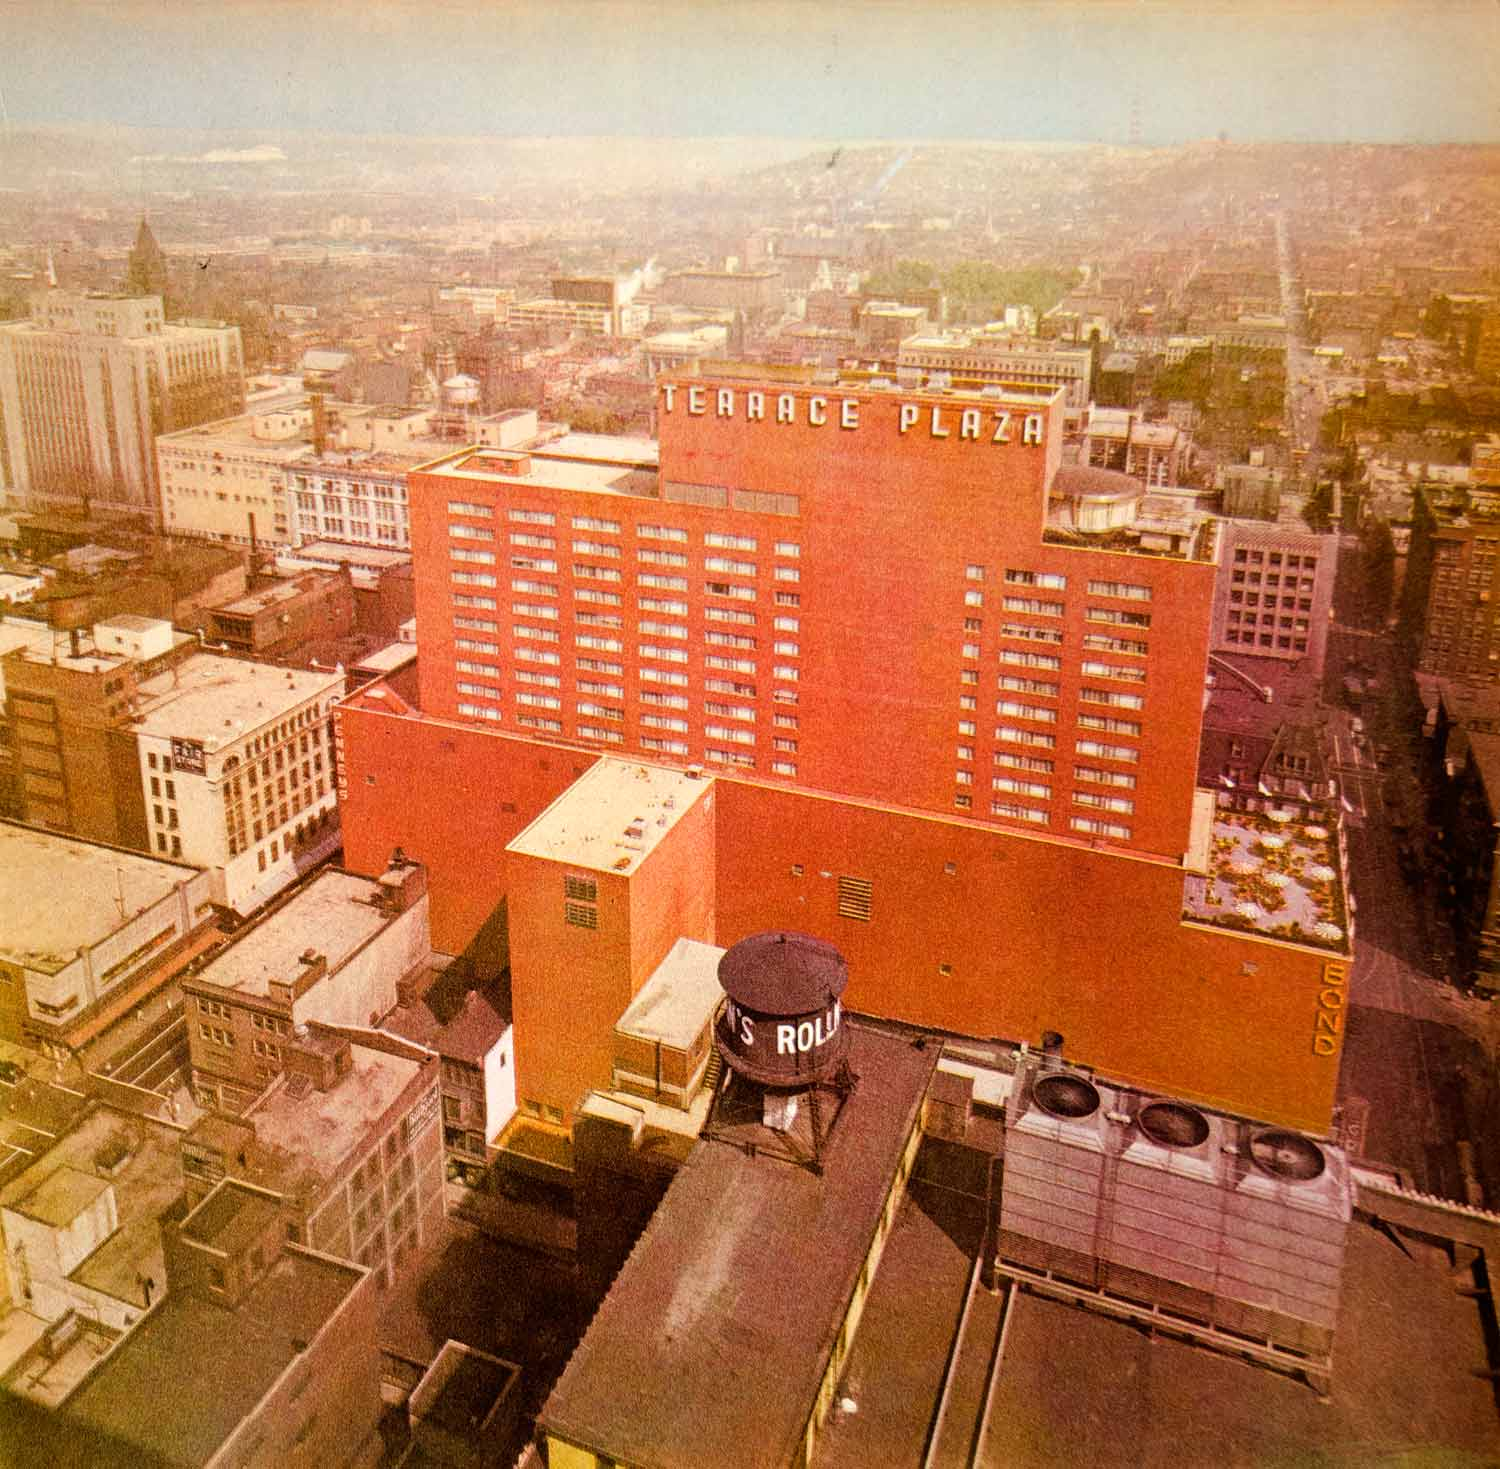 1948 Color Print Terrace Plaza Cincinnati Cityscape View Rooftops Ohio Smog FTM3